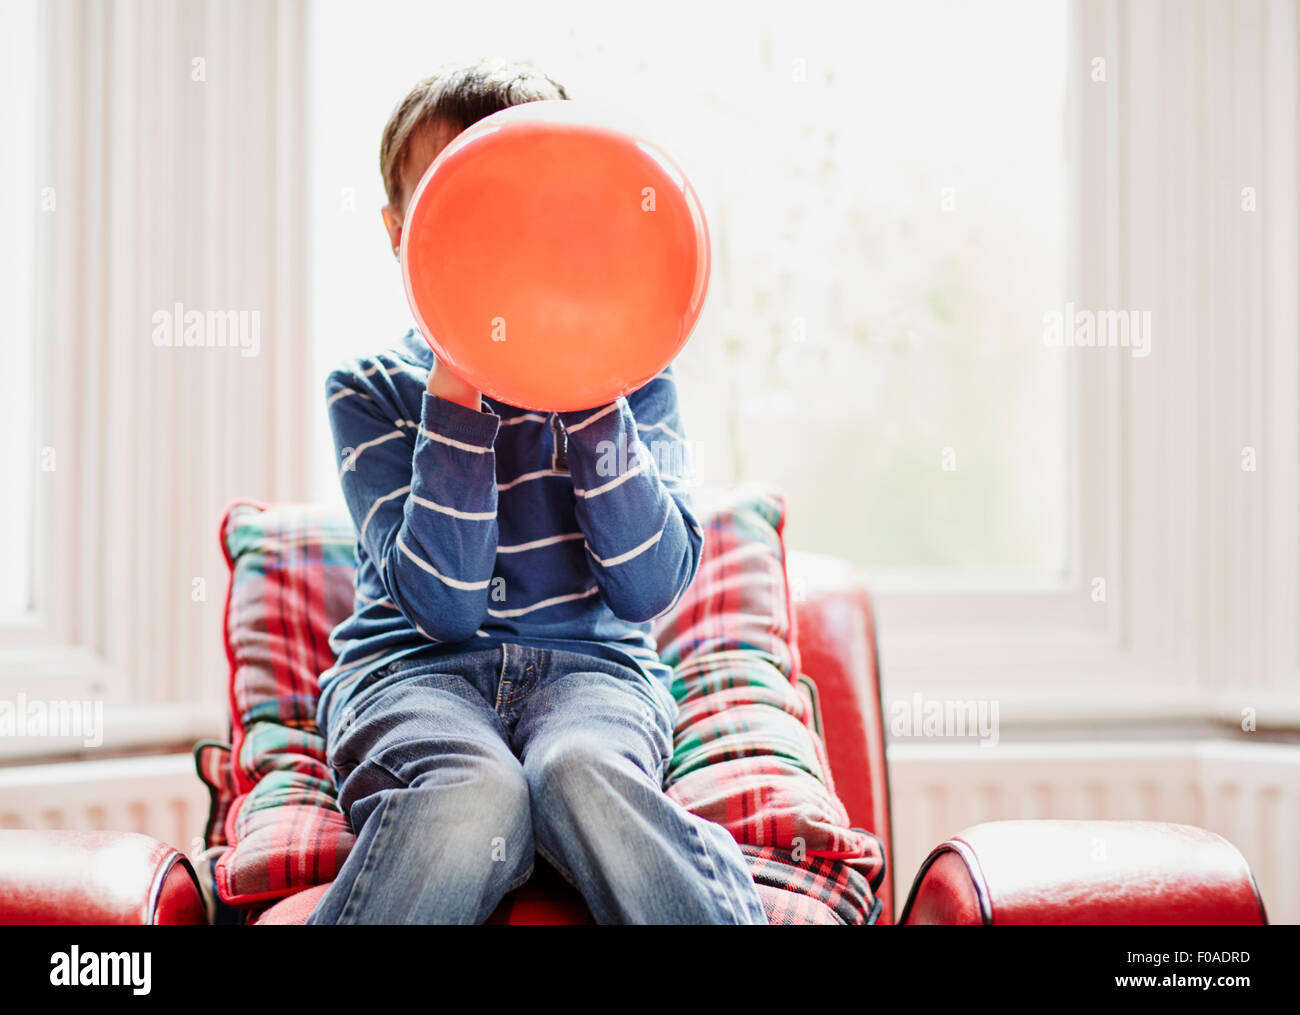 Young boy holding balloon en face de visage Photo Stock